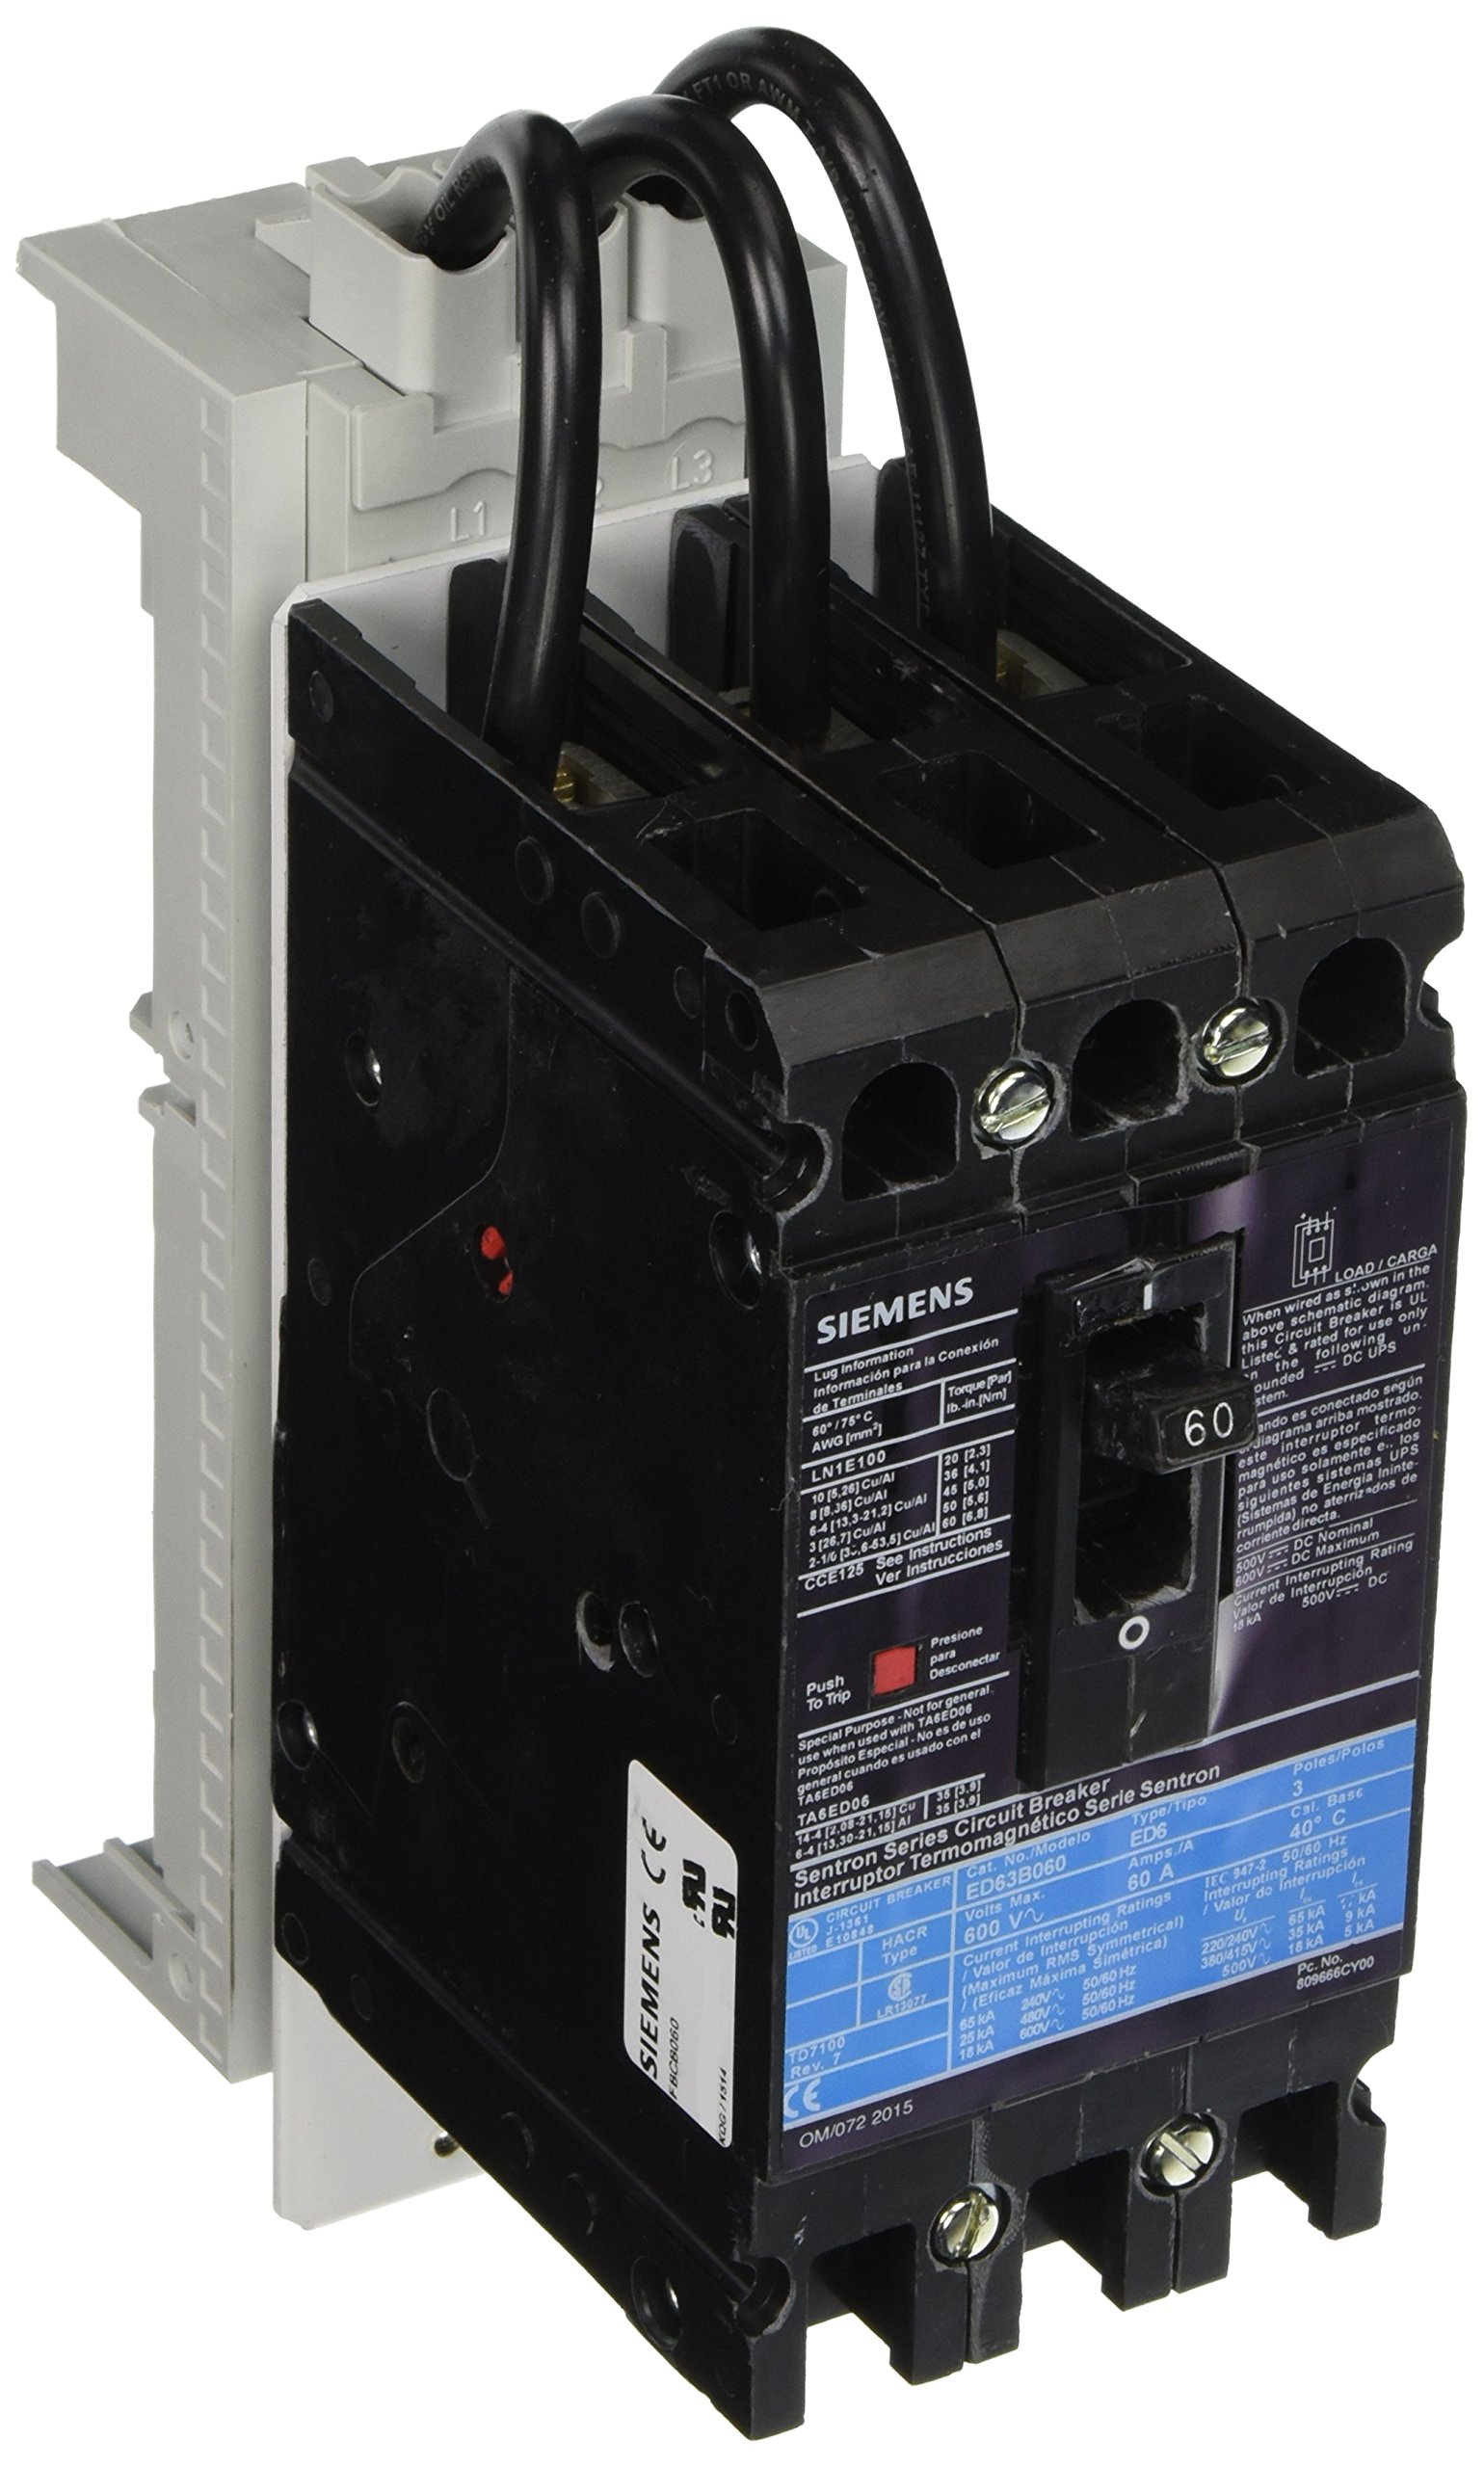 Siemens  FBCB060 Fast Bus Busbar Circuit Breaker, Feeder 3 Pole, Snap On Adapter Shoes, ED Breaker Frame, 60A UL Current Rating, 25kA UL Short Circuit Current Rating On 480V